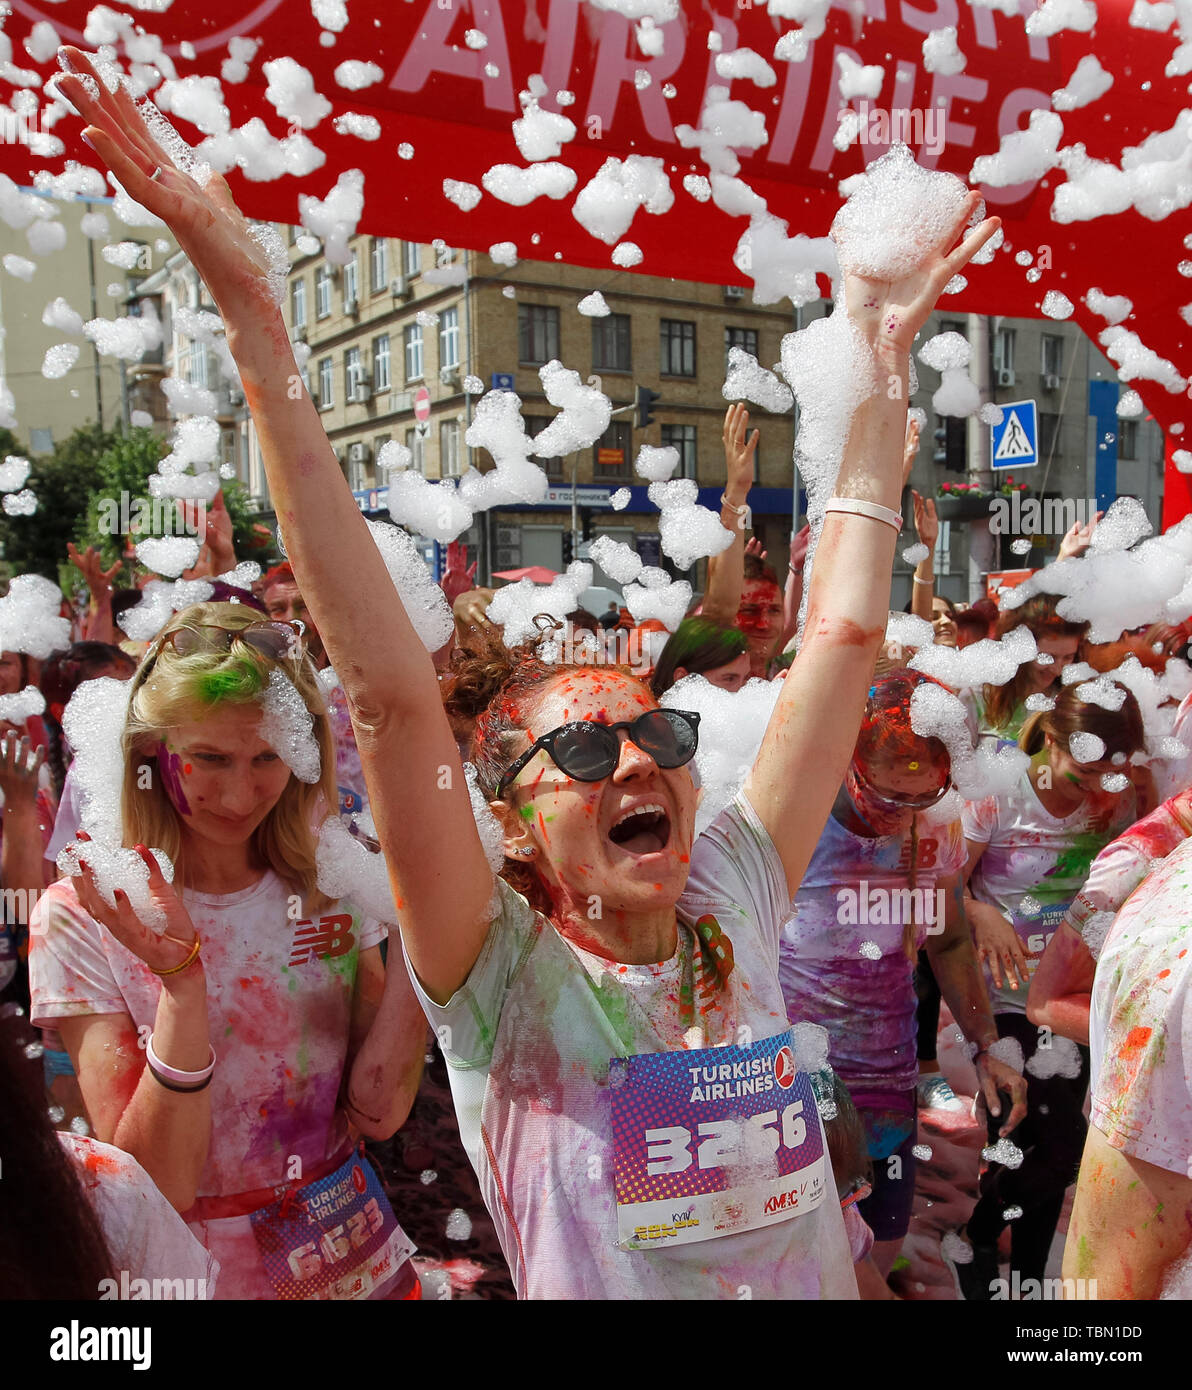 Woman screams with excitement during the event. The Color Run, also known as 'the happiest 5,000 meters on the planet', is an event series and paint race, its first event was in the United States in January 2012 since then the run has spread across the globe leaving a trail of color and happy runners across different continents and countries. The untimed event has no winners or prizes, but runners are showered with colored powder, made of food-grade corn starch, at stations along the run. In Ukrainian capital the first time Kyiv Color Run started in 2014. - Stock Image